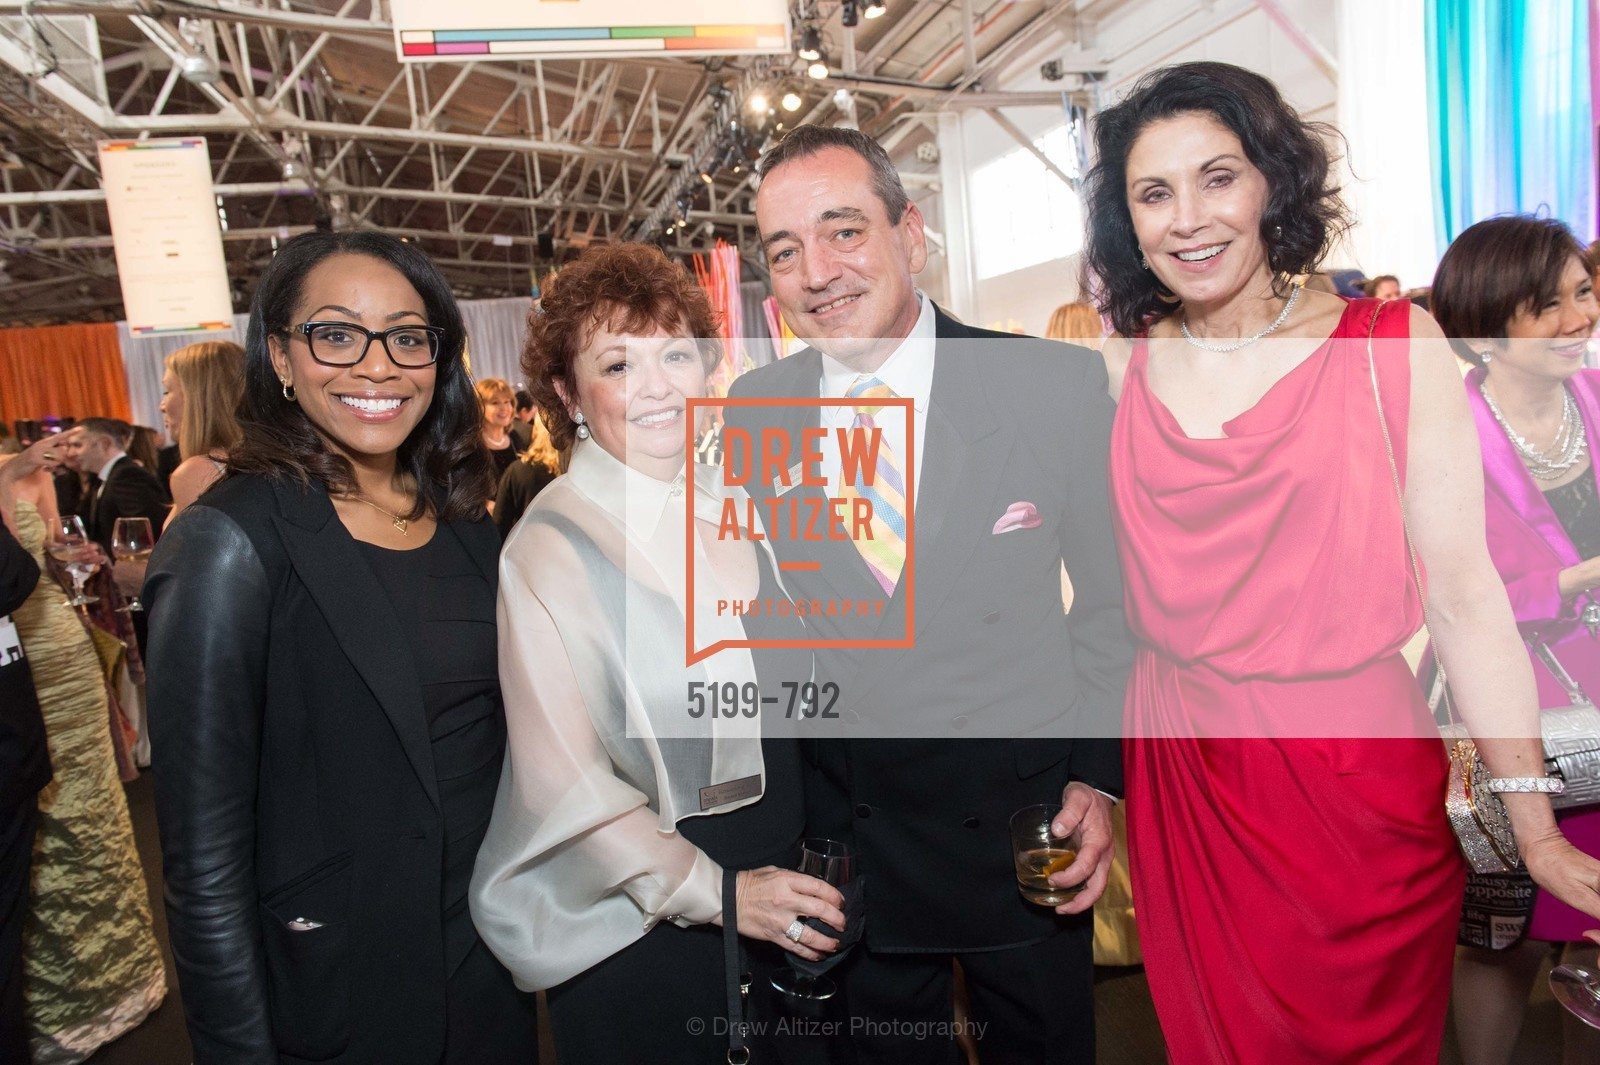 Malia Cohen, Rosemary Wong, Ashley McCumber, Lois Chess, MEALS ON WHEELS OF SAN FRANCISCO'S 28th Annual Star Chefs and Vintners Gala, US, April 19th, 2015,Drew Altizer, Drew Altizer Photography, full-service agency, private events, San Francisco photographer, photographer california